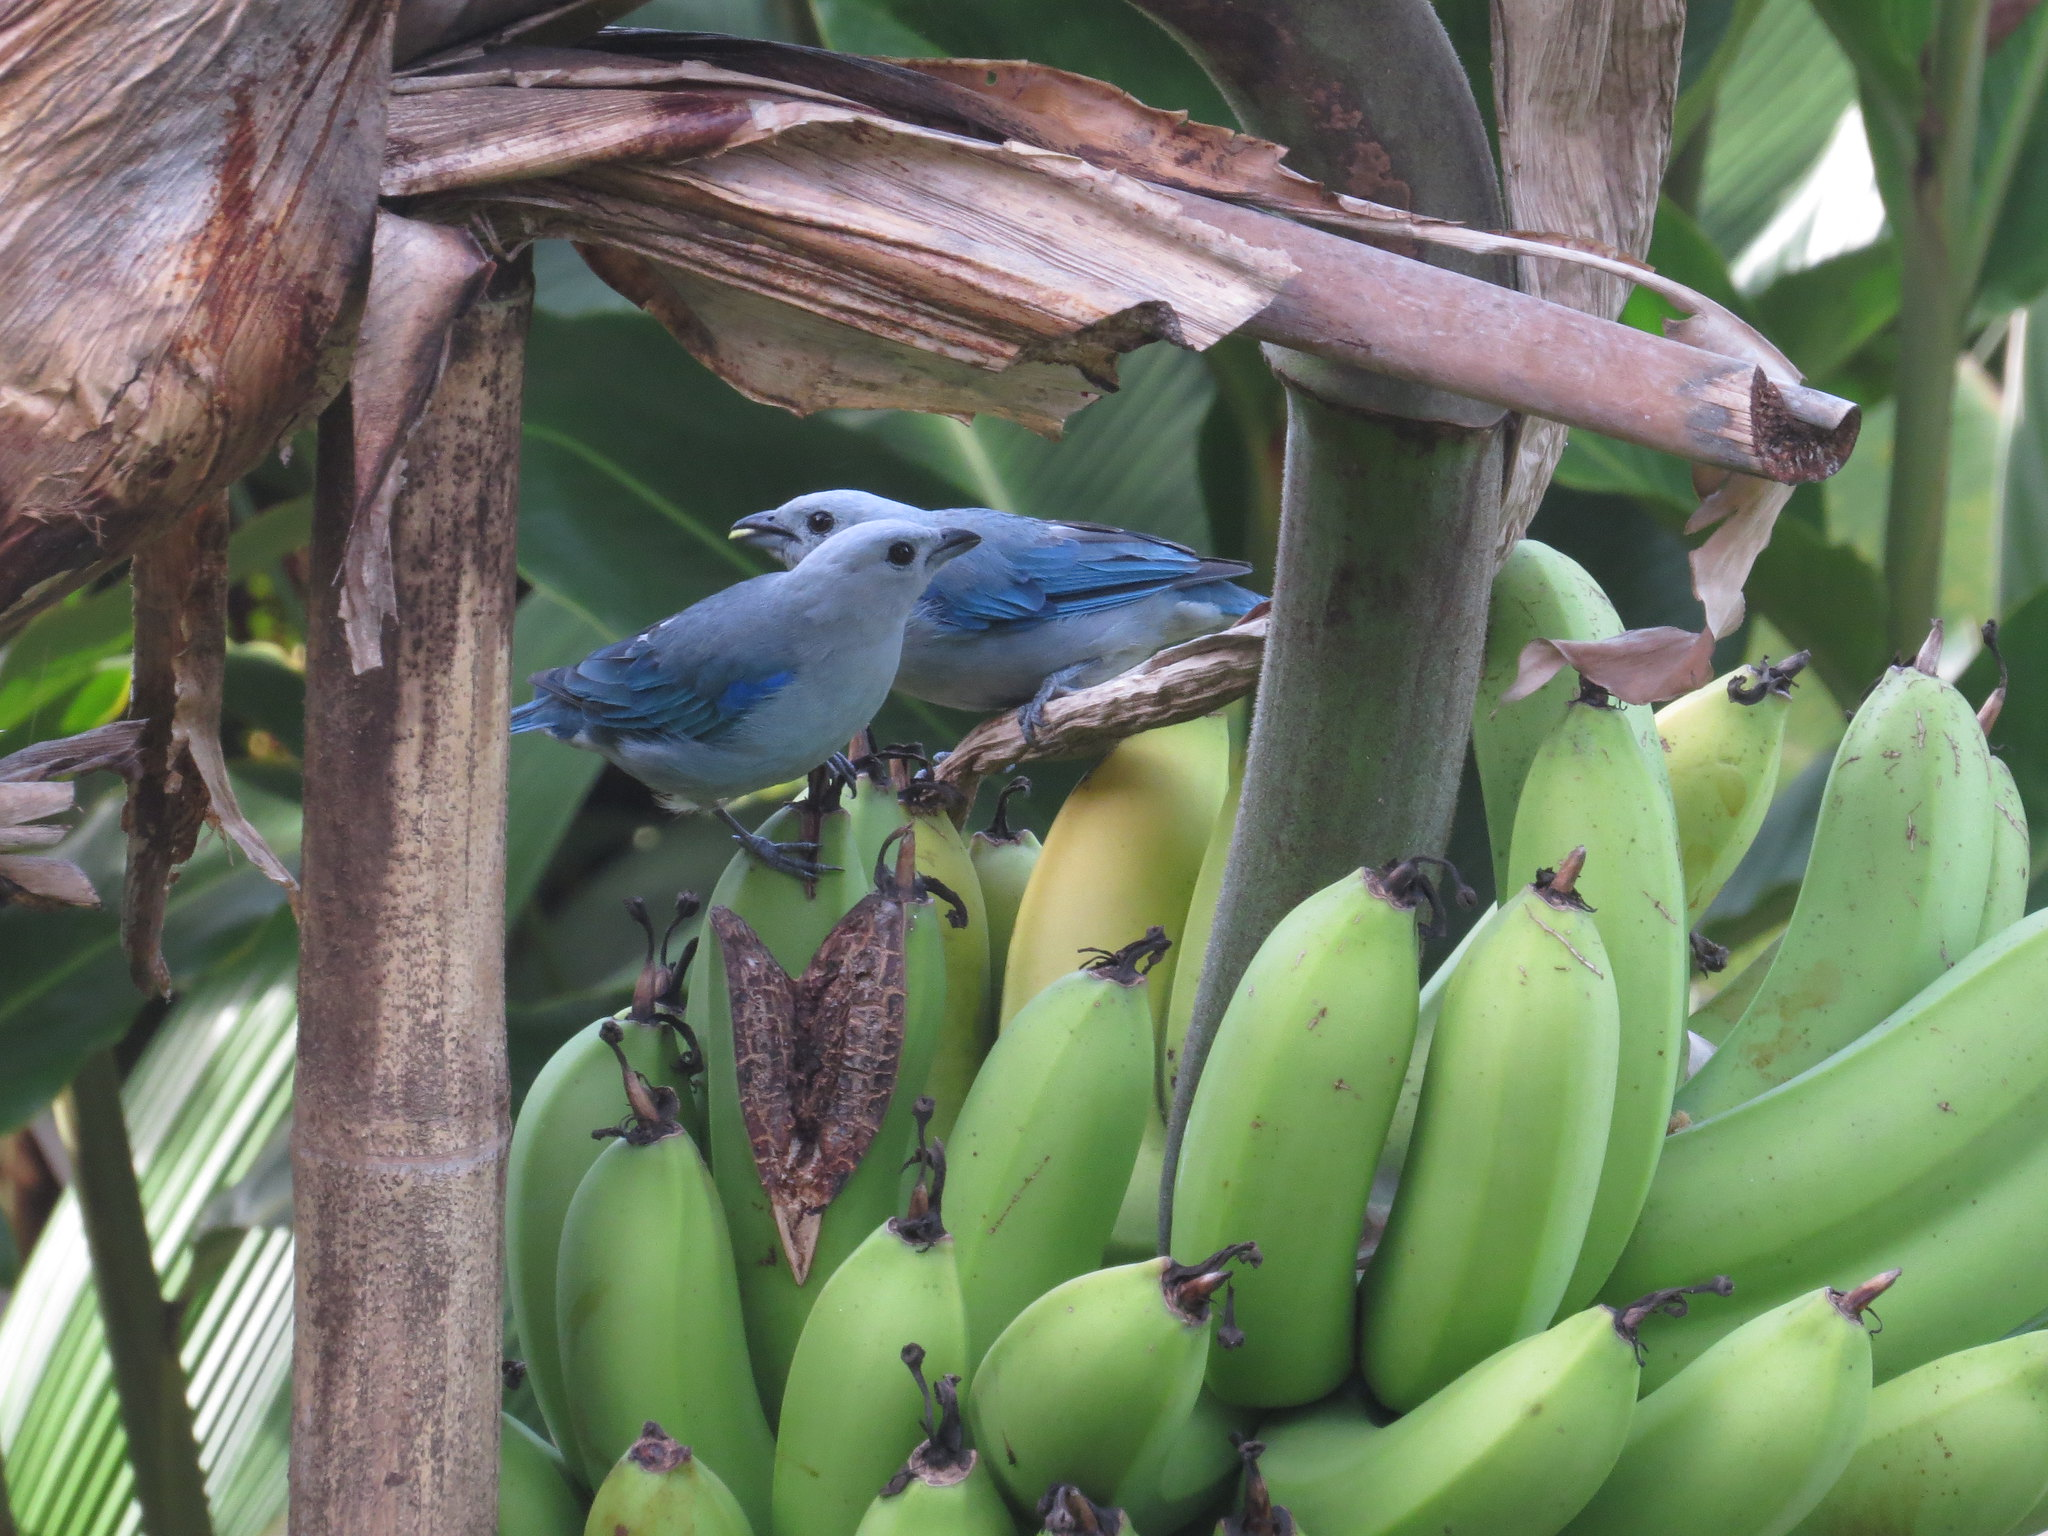 Blue-gray Tanagers by Seth Inman - La Paz Group